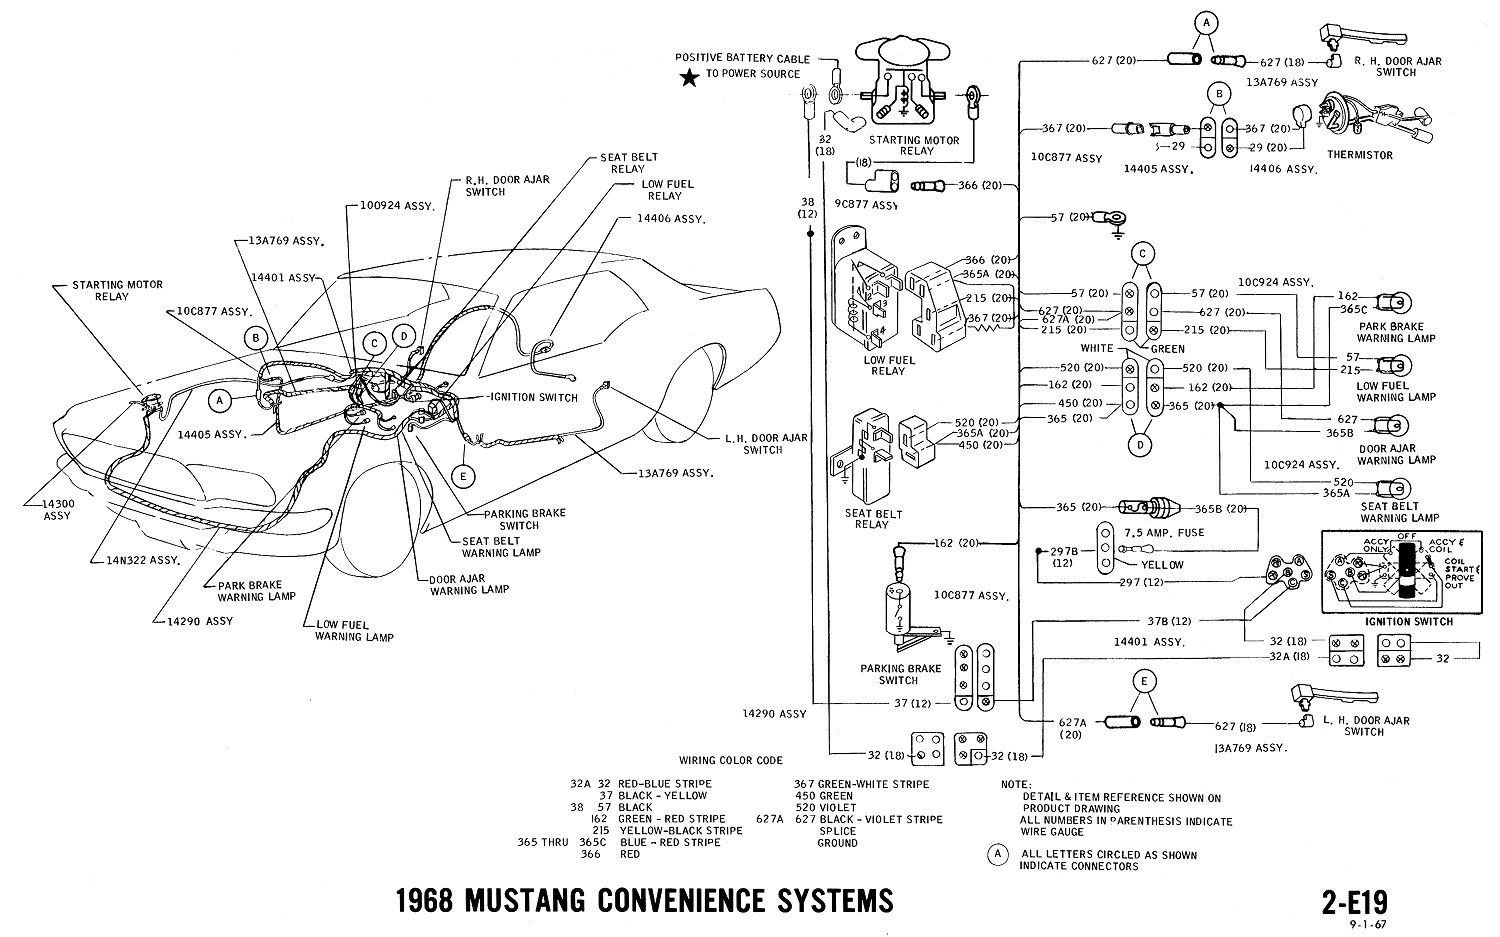 Schematics c further Photo 04 additionally 1446222 460 Efi Vacuum Diagram in addition Schematics a moreover 86 Mustang 6 Cyl Wiring Diagram. on 1966 ford f100 wiring diagram